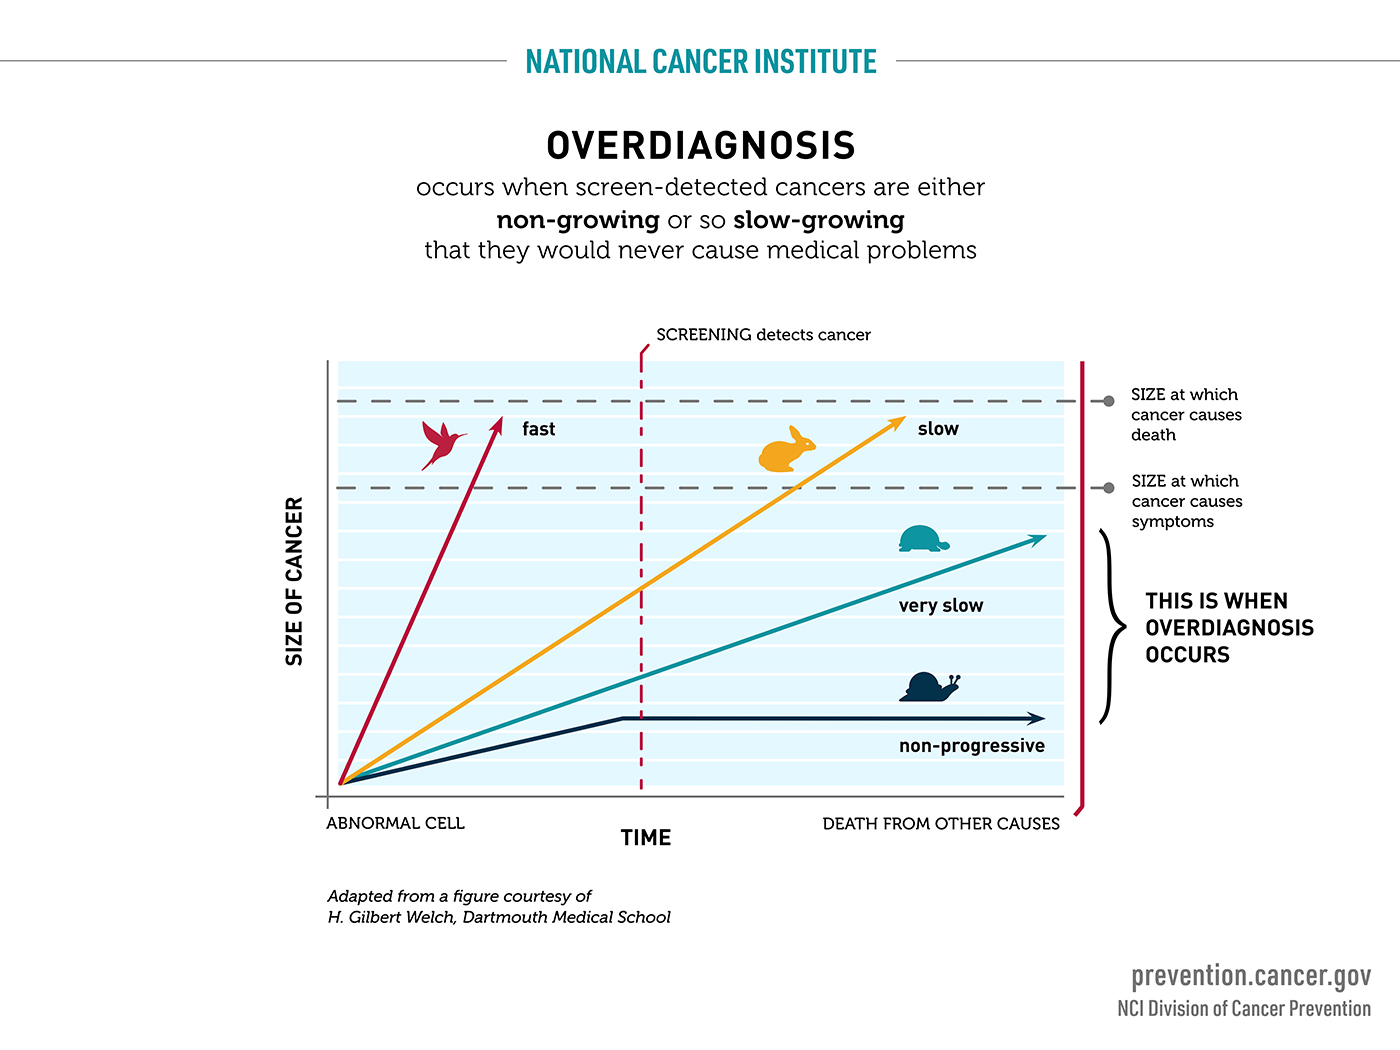 Overdiagnosis occurs when screen-detected cancers are either non-growing or so slow-growing that they would never cause medical problems.